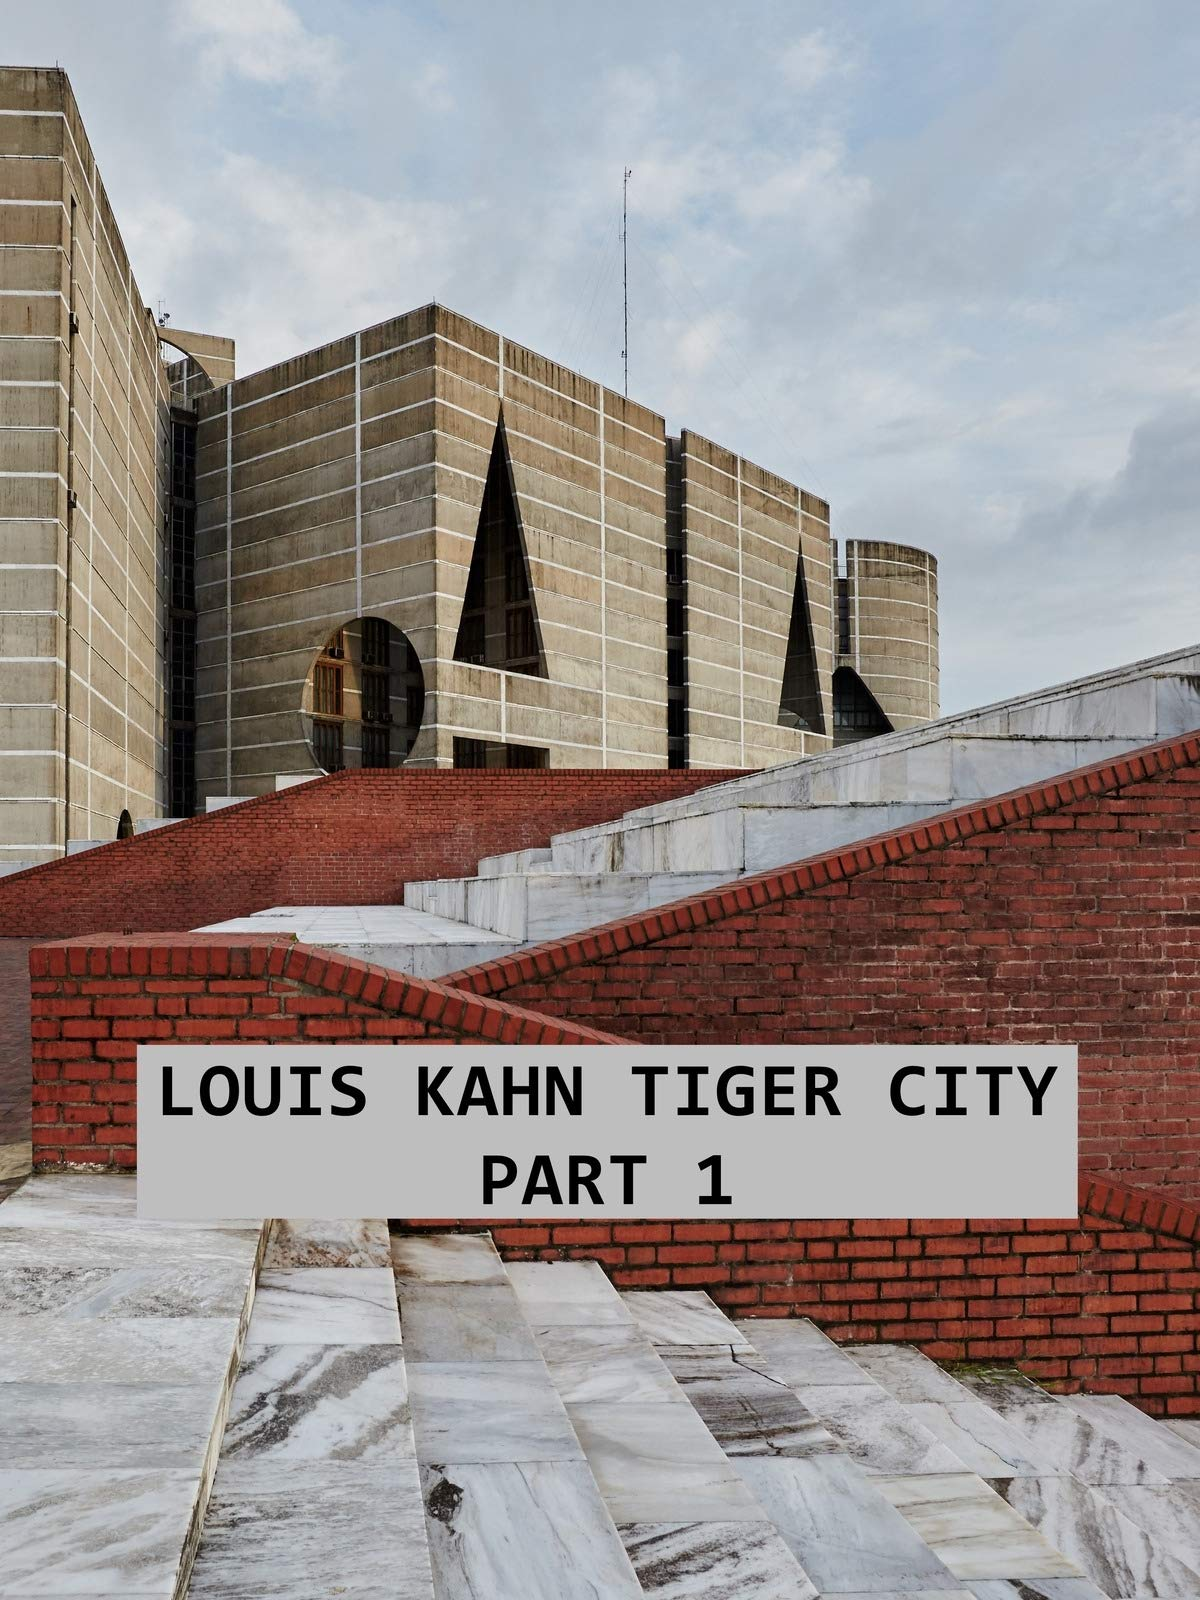 Louis Kahn Tiger City Part 1